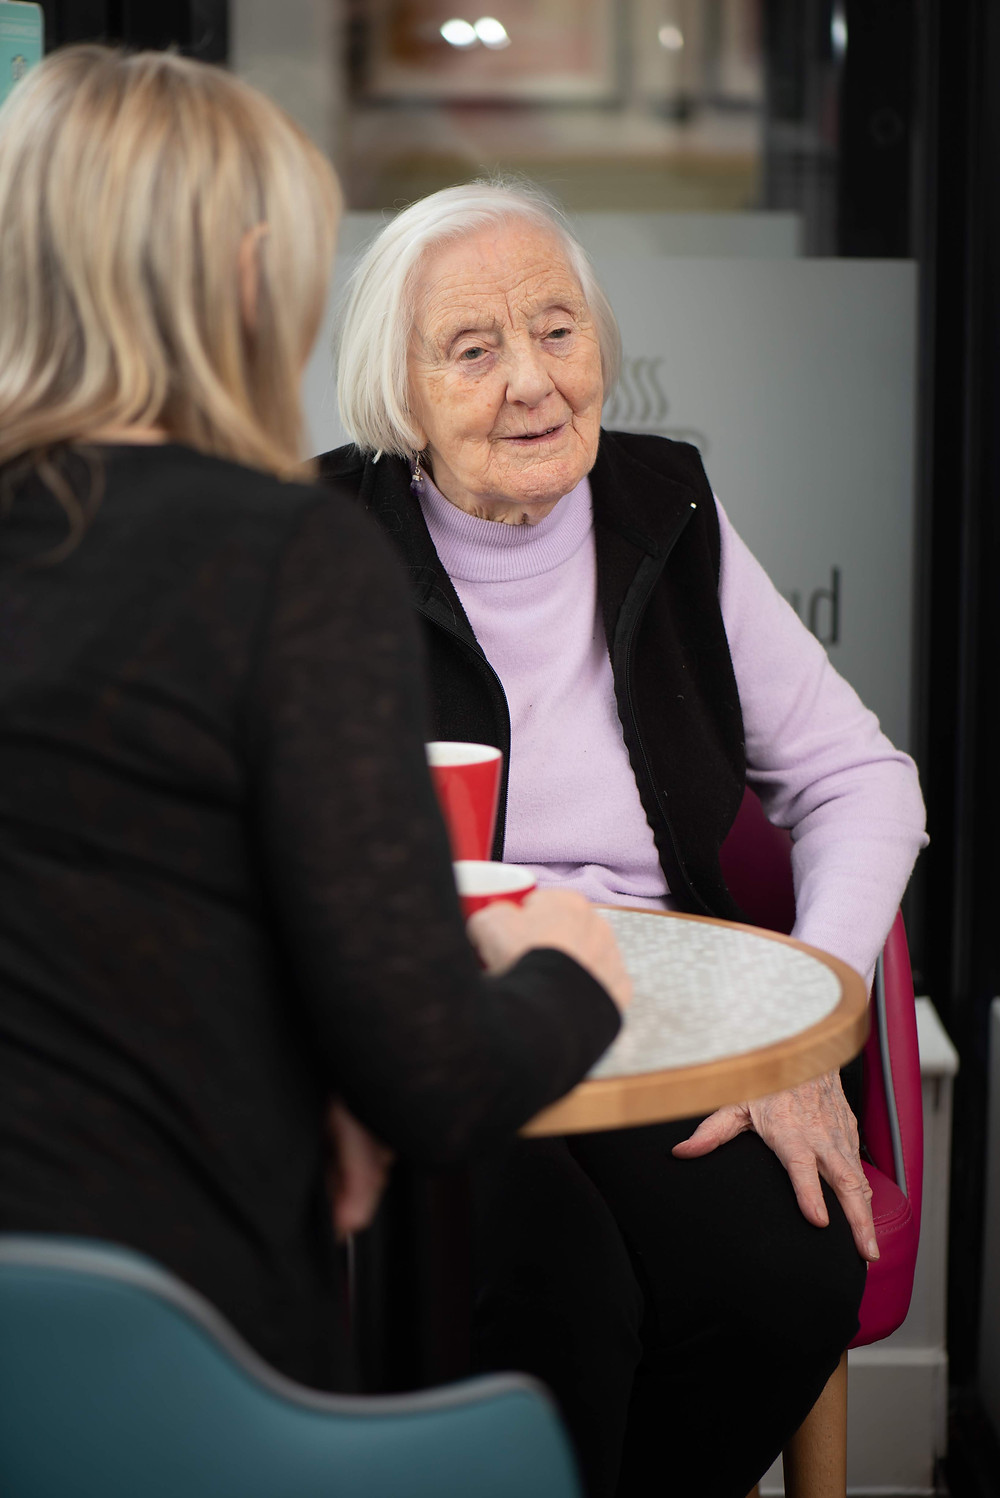 Photo shows an older lady sat in the Brew Me Sunshine cafe with a younger woman.